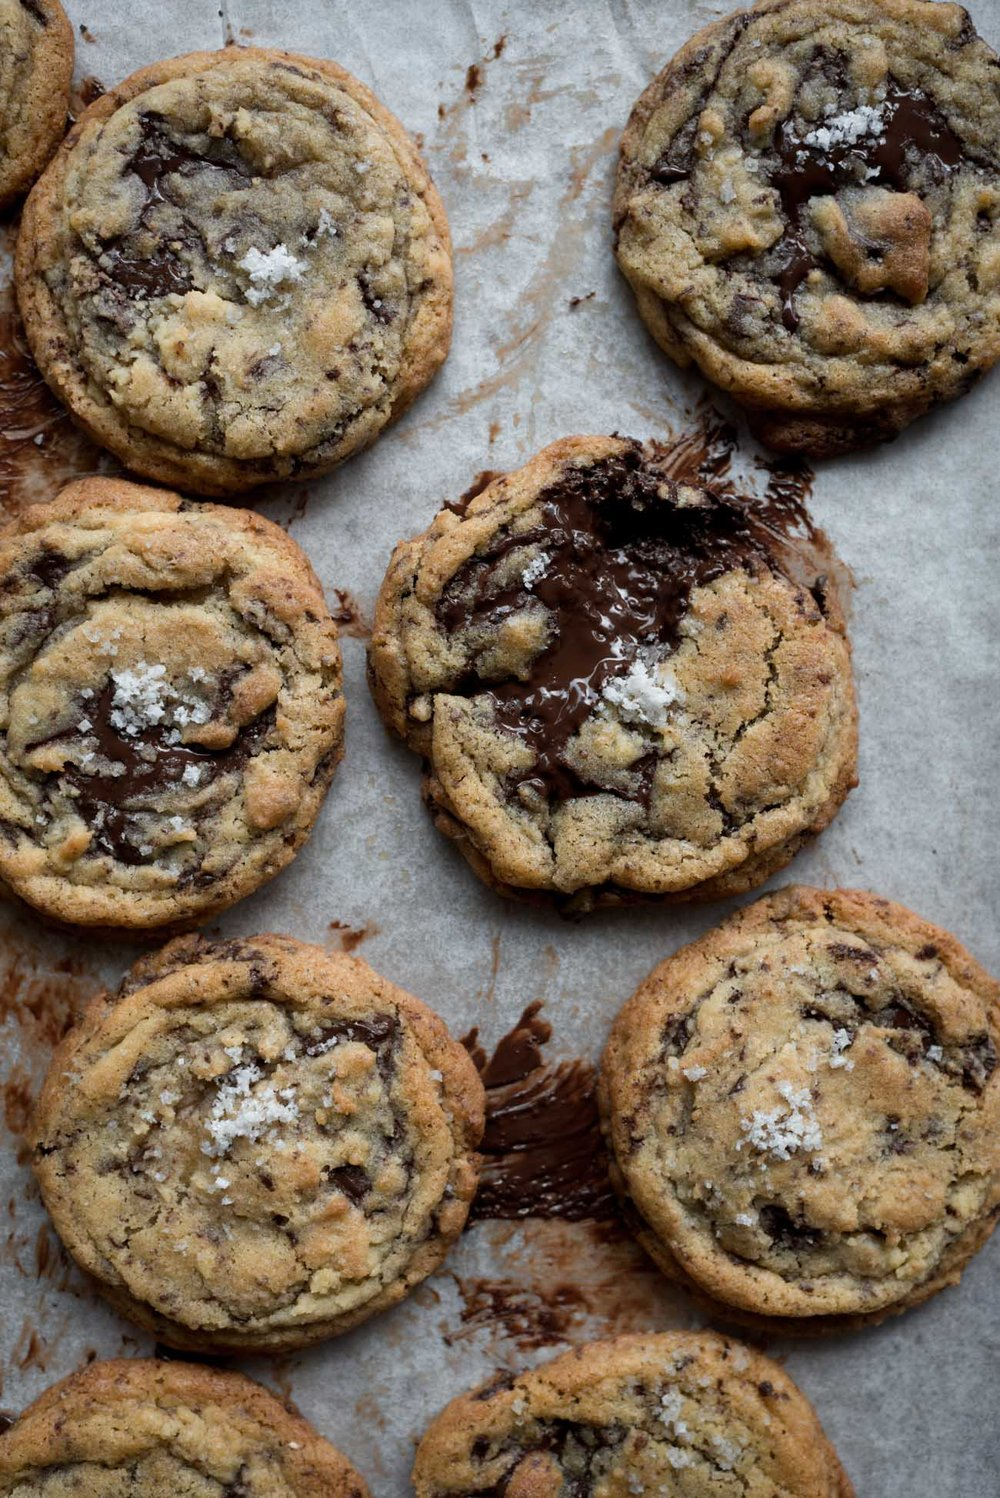 Classic-Chocolate-Chip-Cookies-78-of-188.jpg